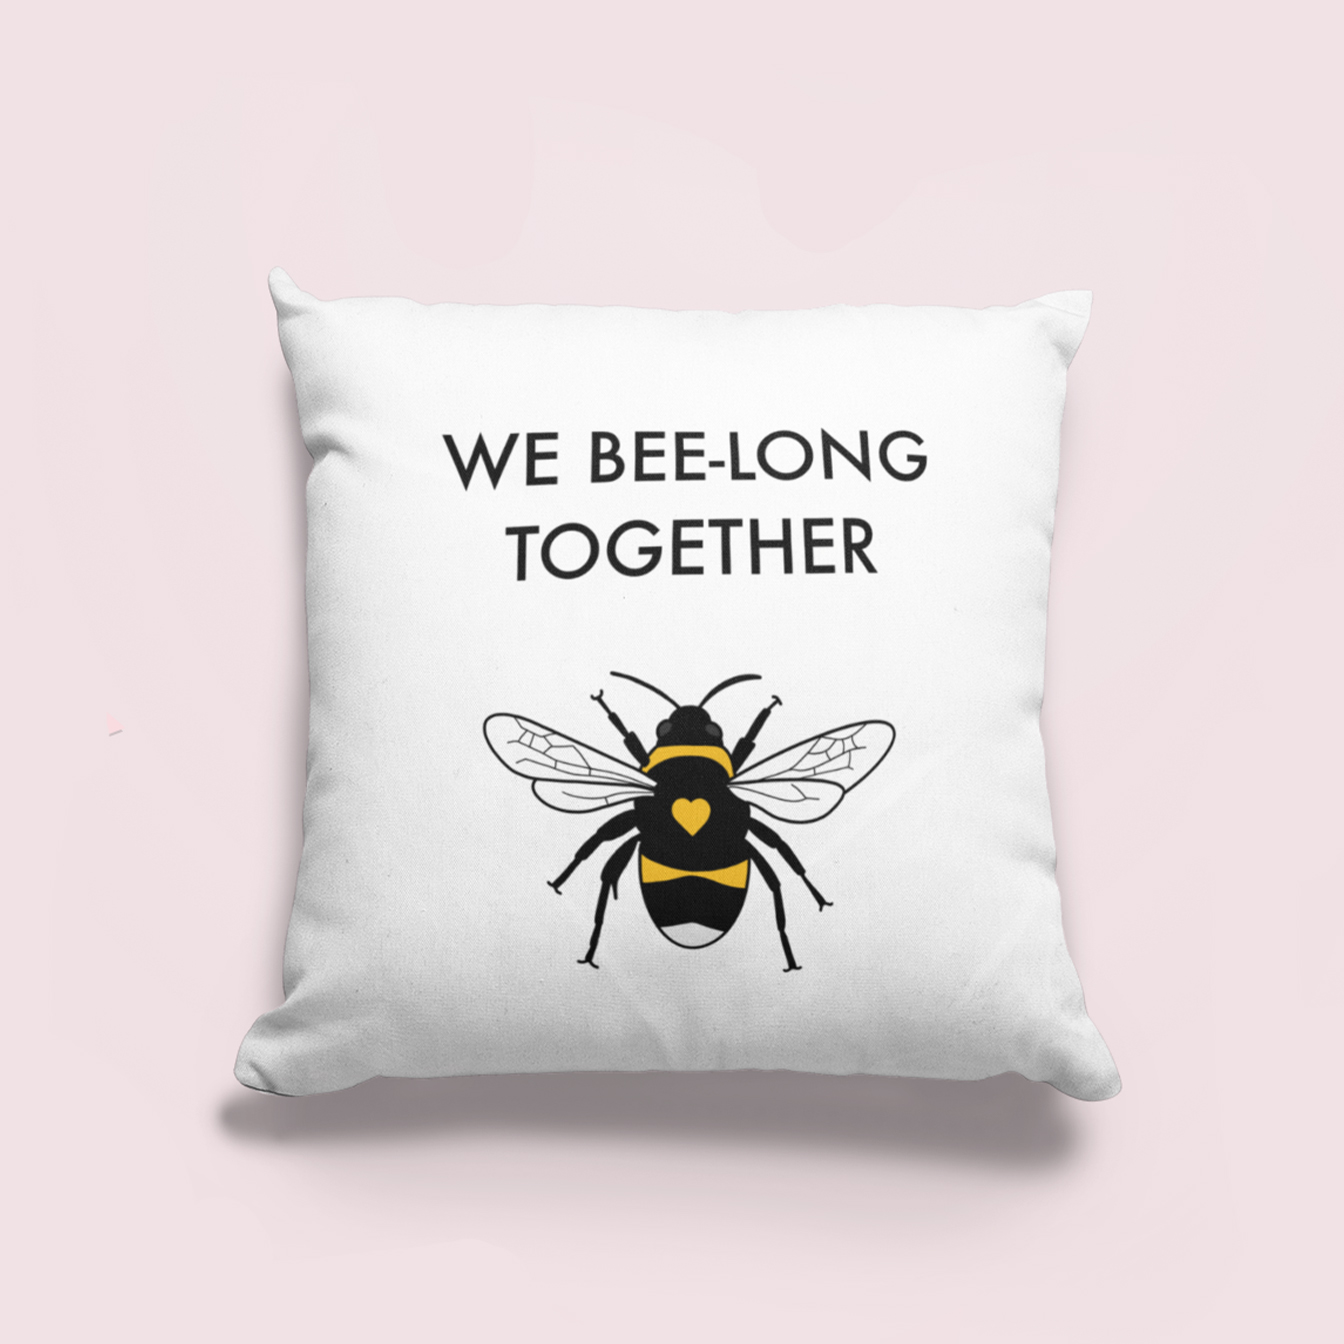 Perfect late gifts for those who've forgotten about Valentine's Day, The Manc